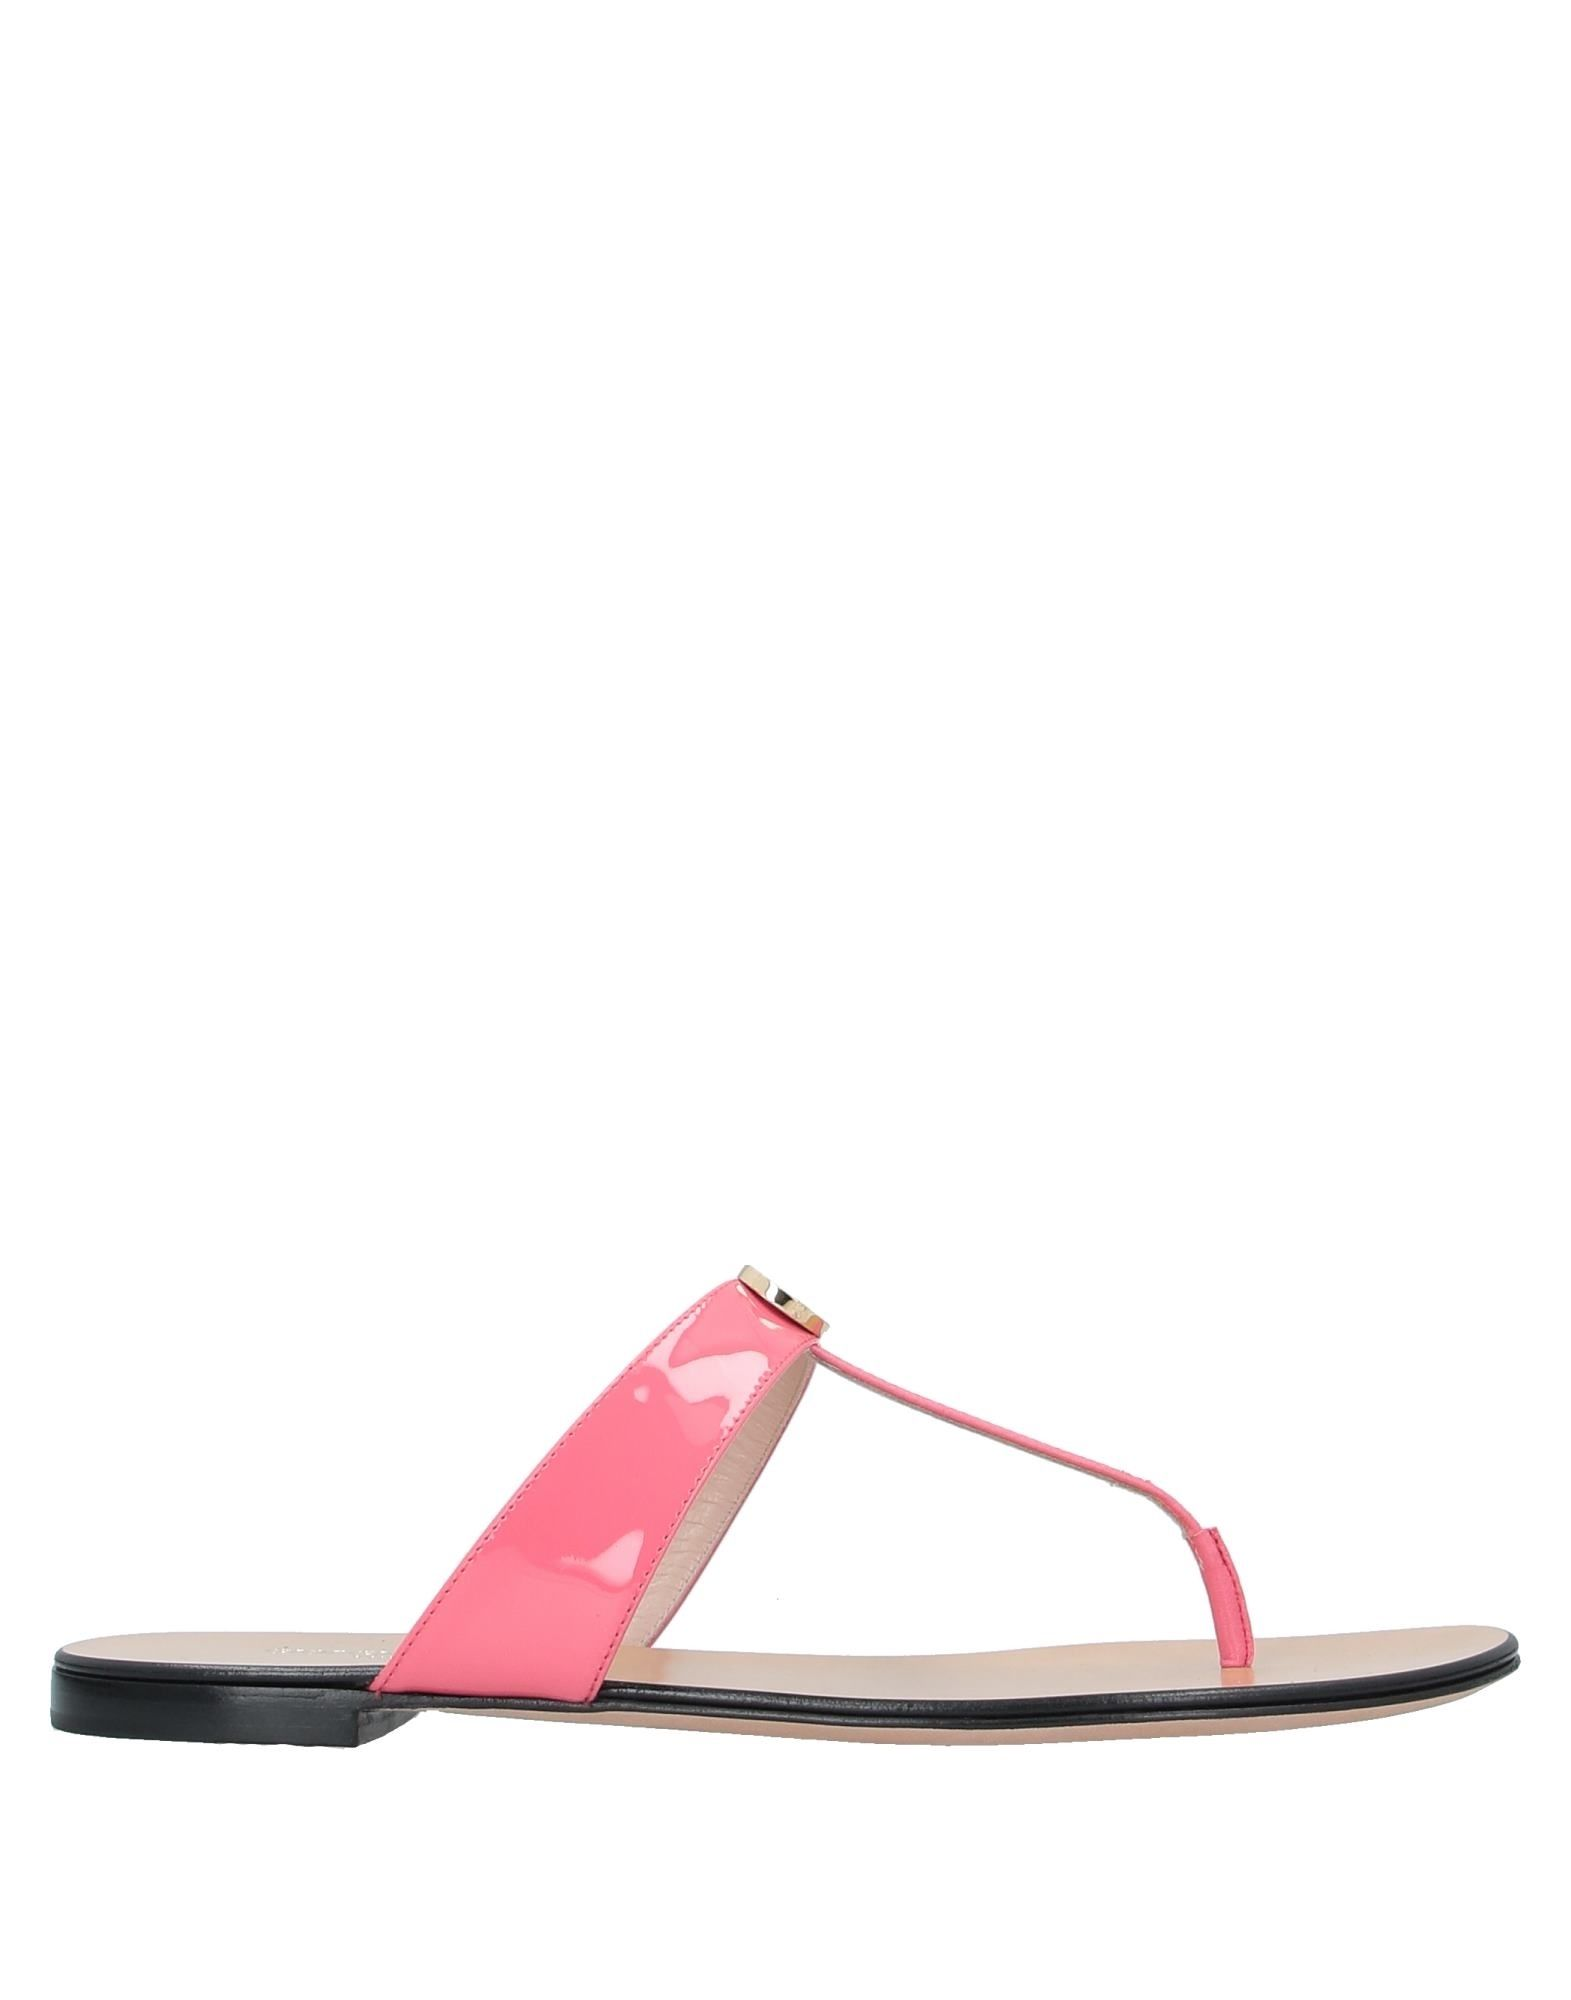 GIORGIO ARMANI Toe strap sandals. leather, varnished effect, logo, solid color, round toeline, flat, leather lining, leather sole, contains non-textile parts of animal origin. 100% Calfskin, Lambskin